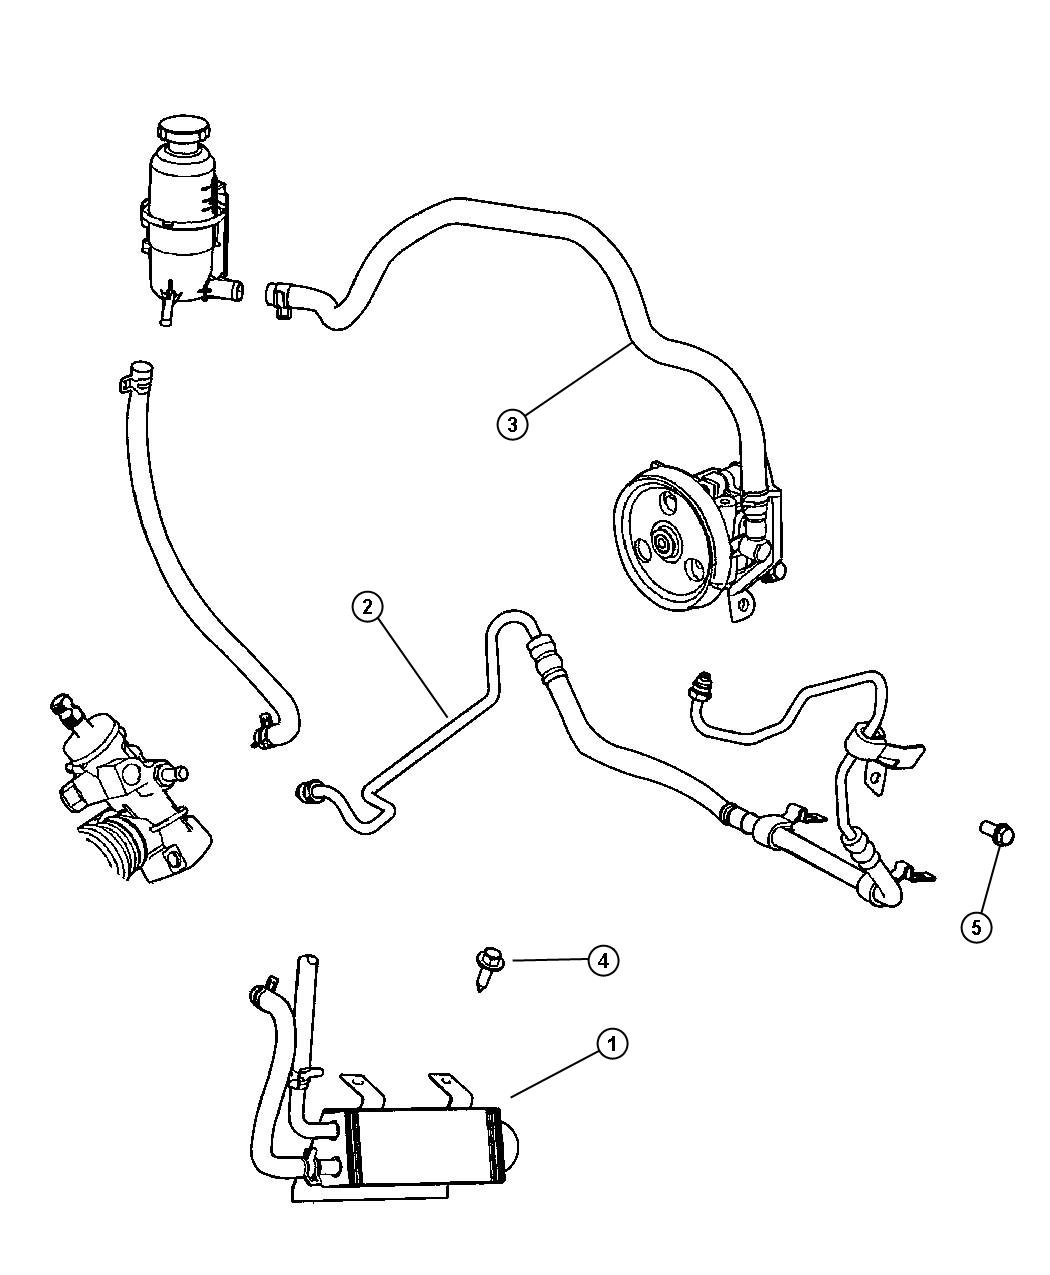 2003 pt cruiser belt diagram pictures to pin on pinterest